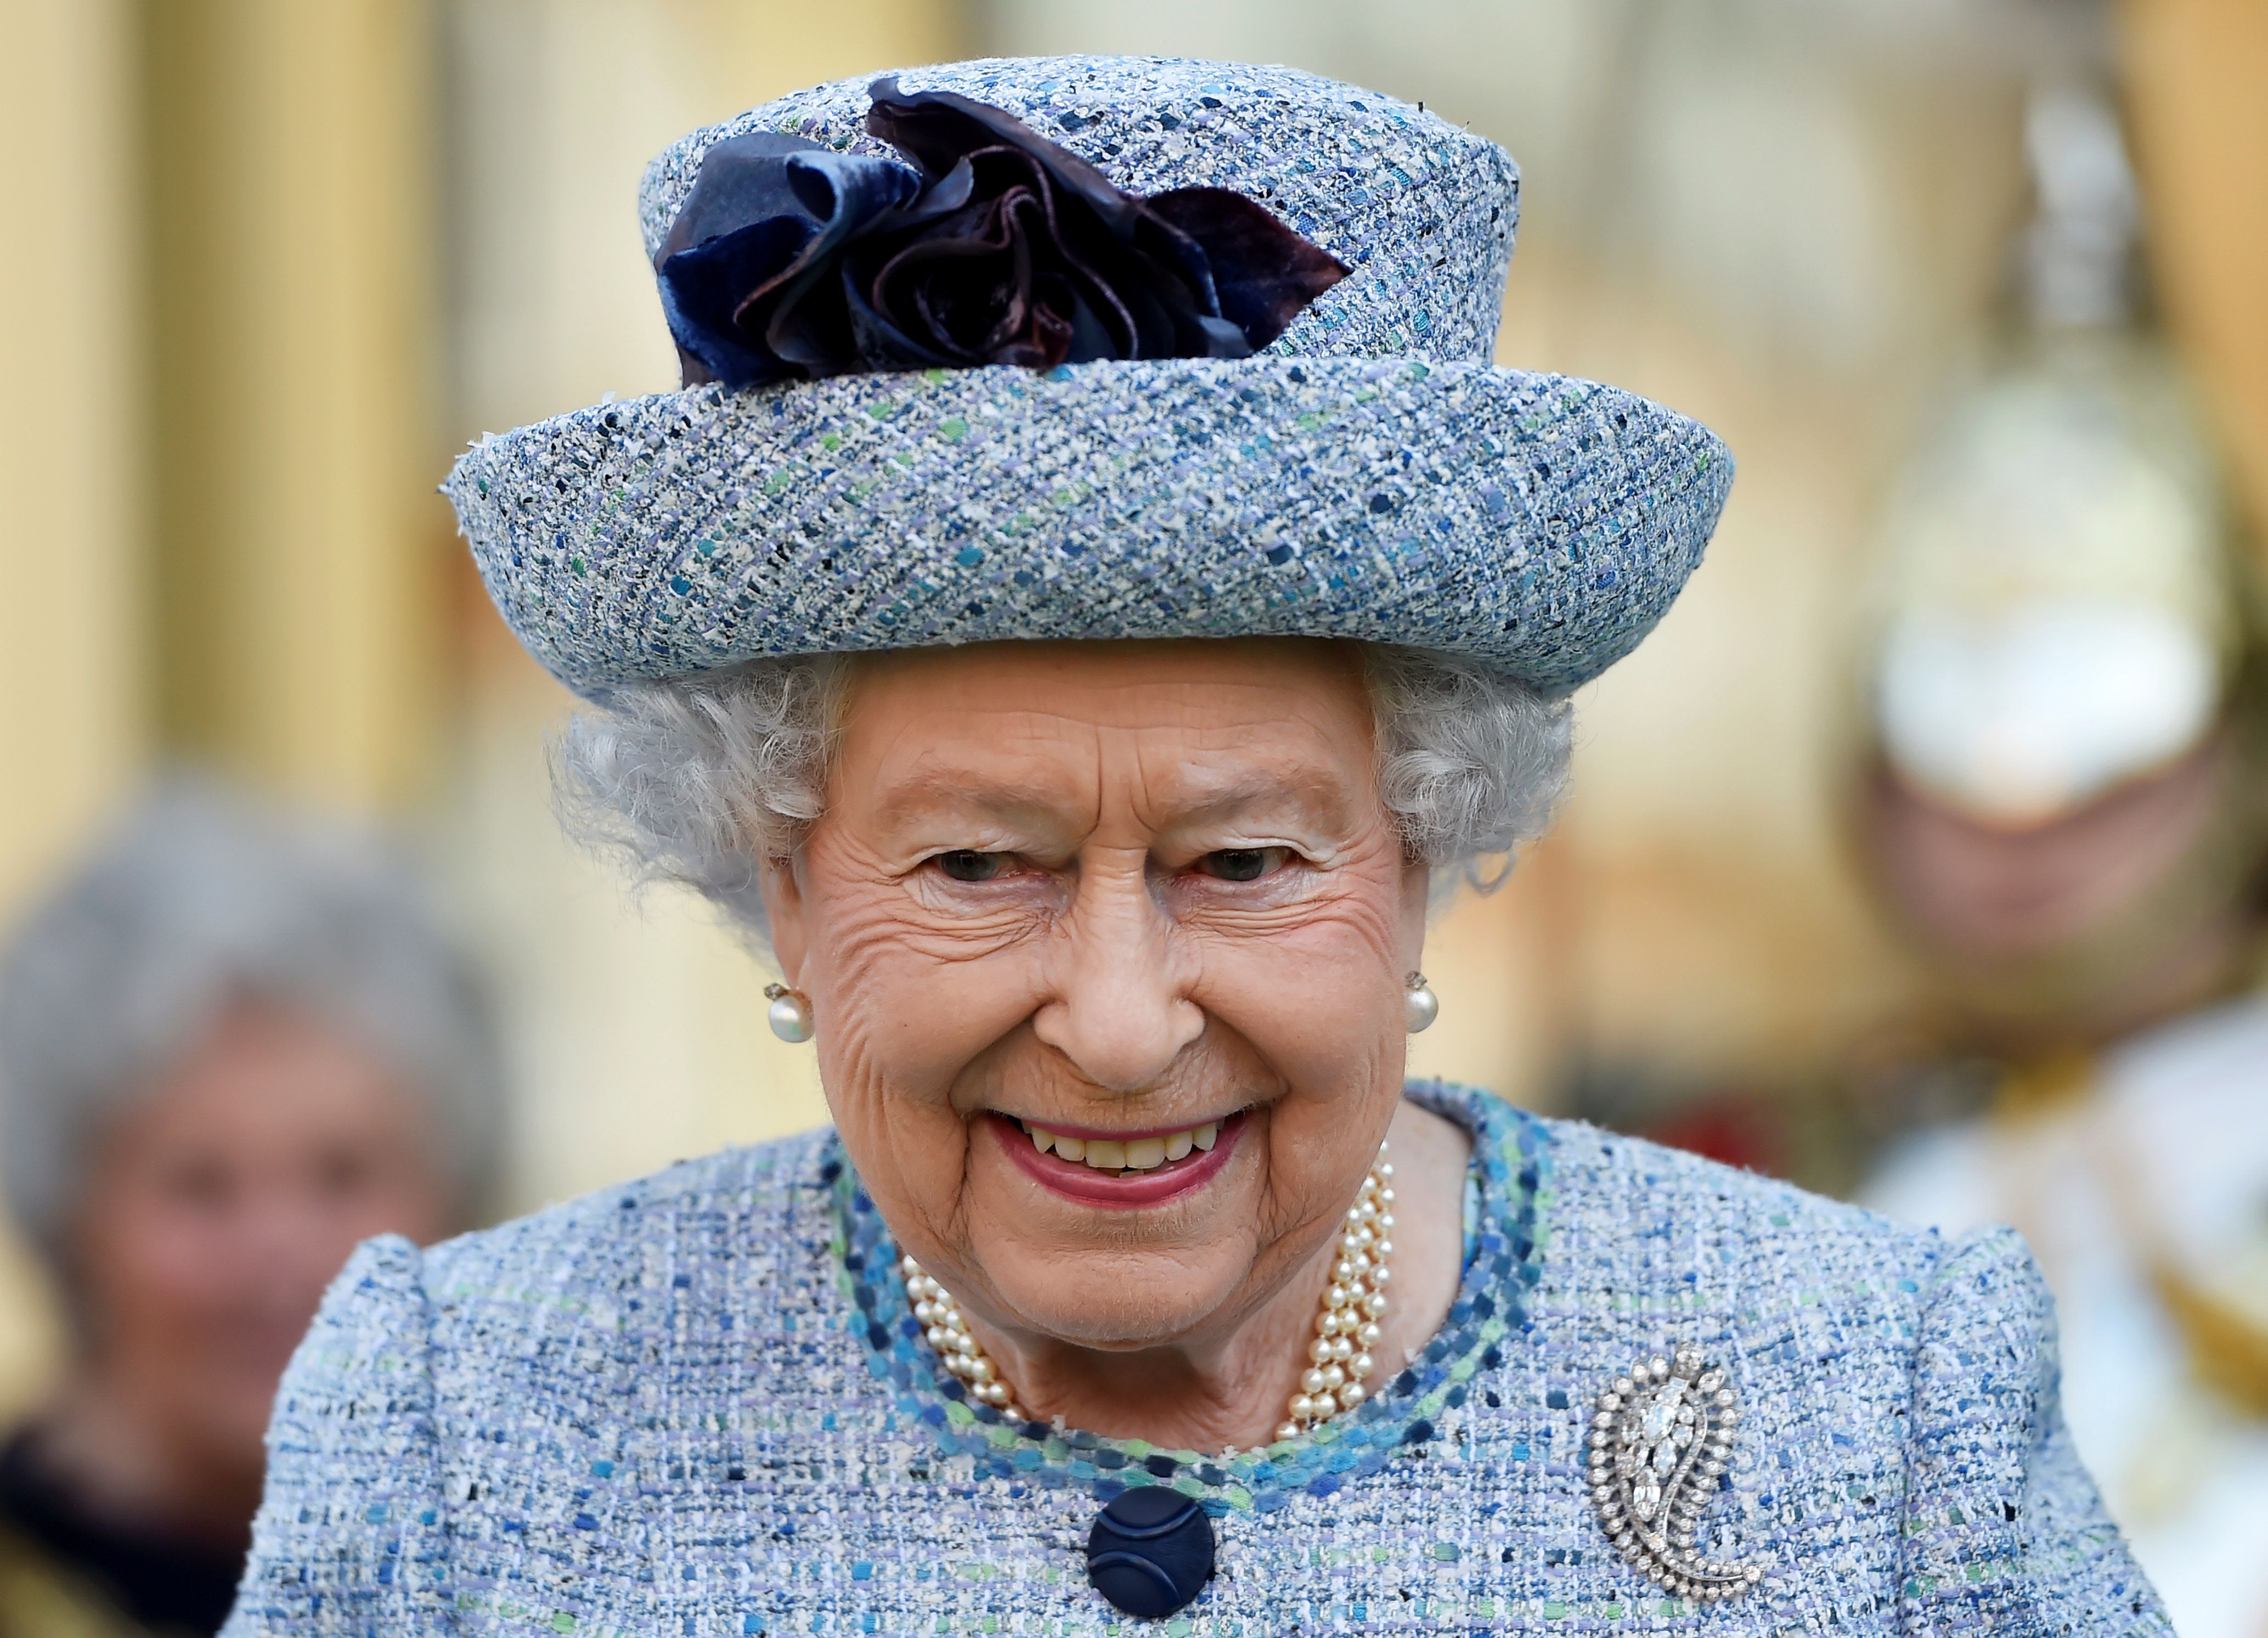 Student officers at Warwick University want to debate whether the monarchy should be